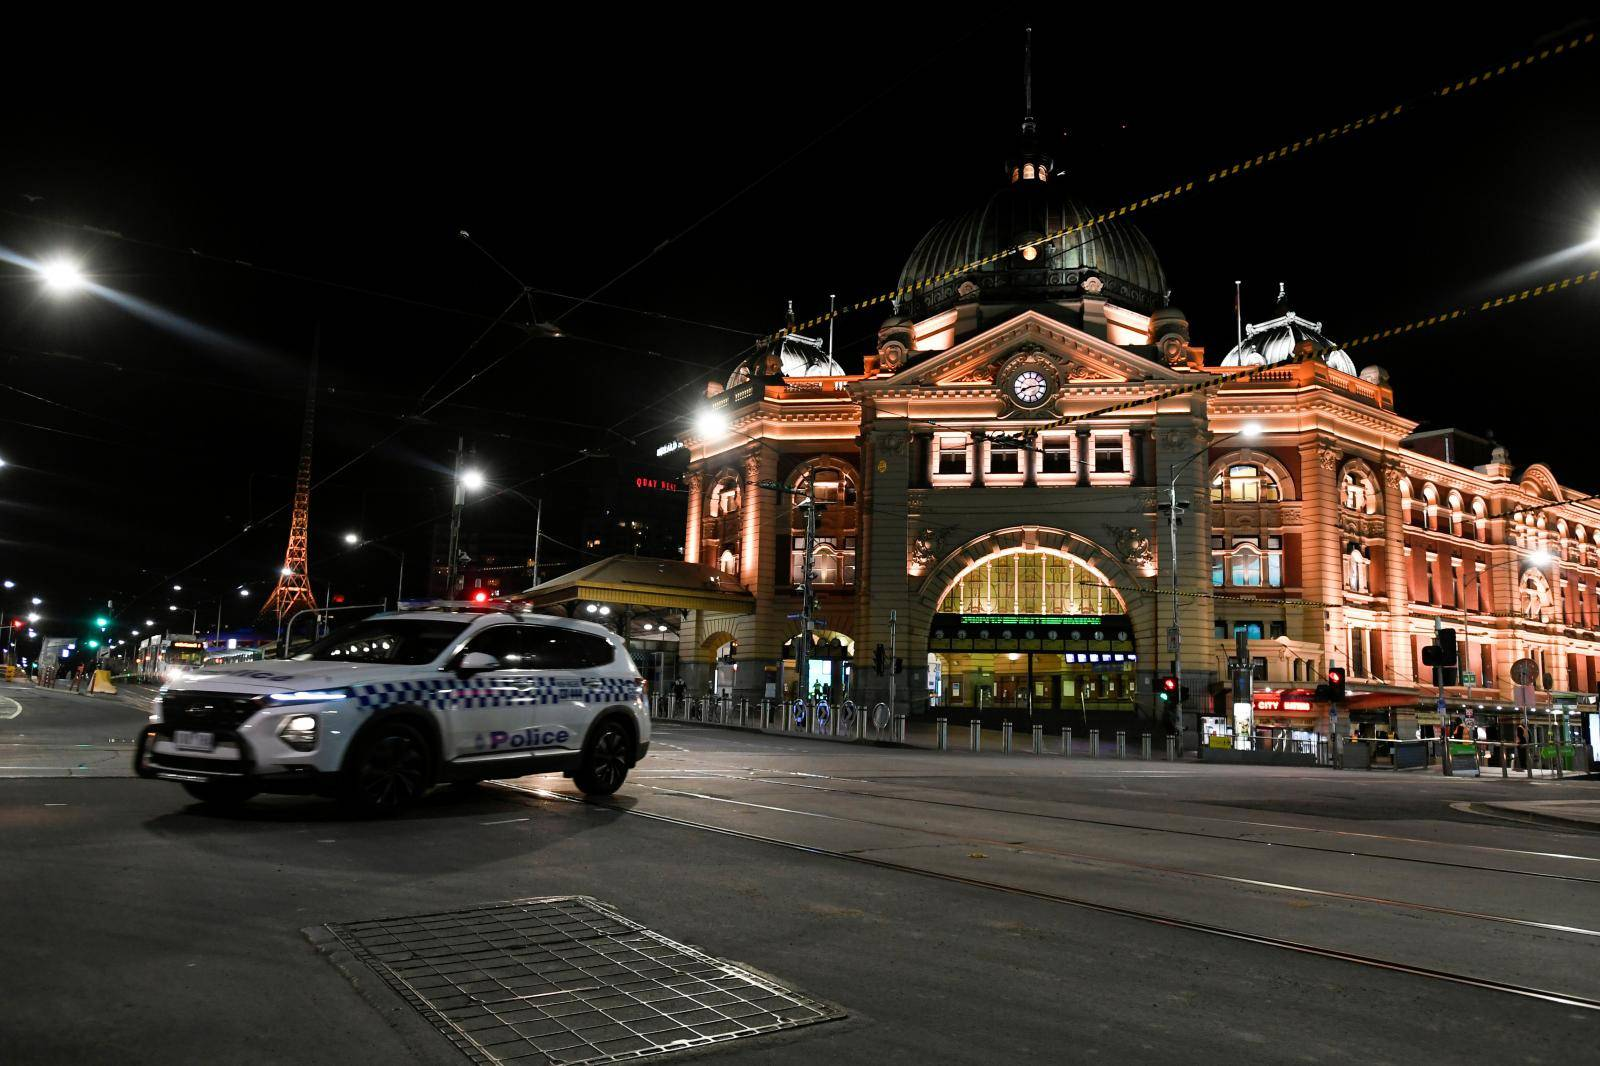 A police car is seen outside a transit hub after a citywide curfew was introduced to slow the spread of COVID-19 in Melbourne